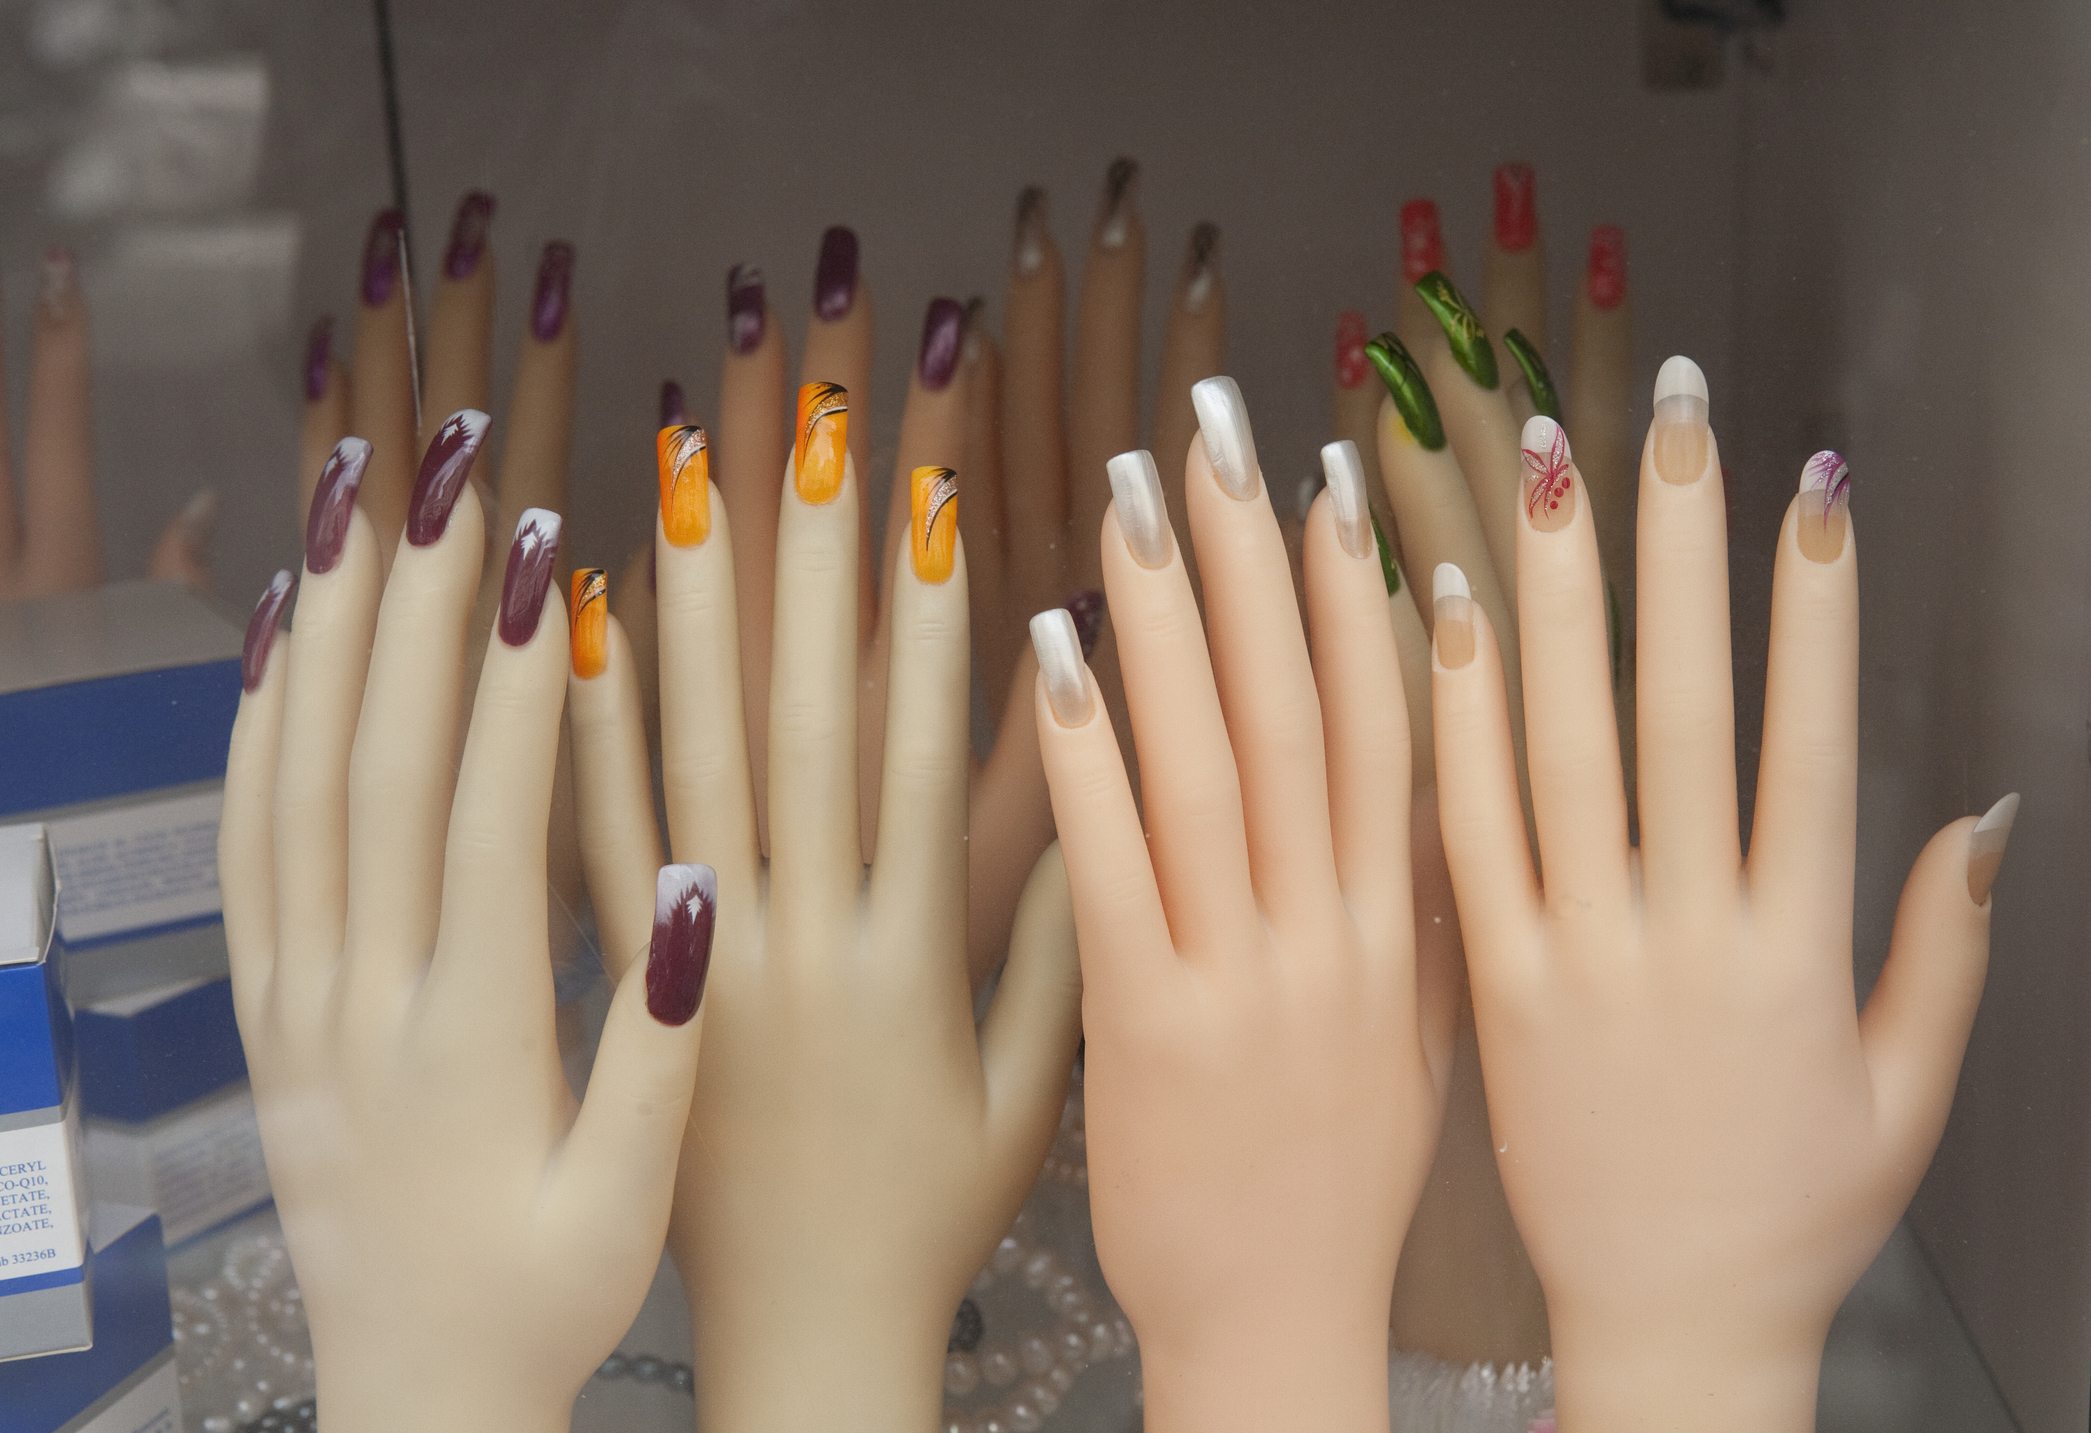 mannequin hands on display in a fingernail decorating shop, showing examples